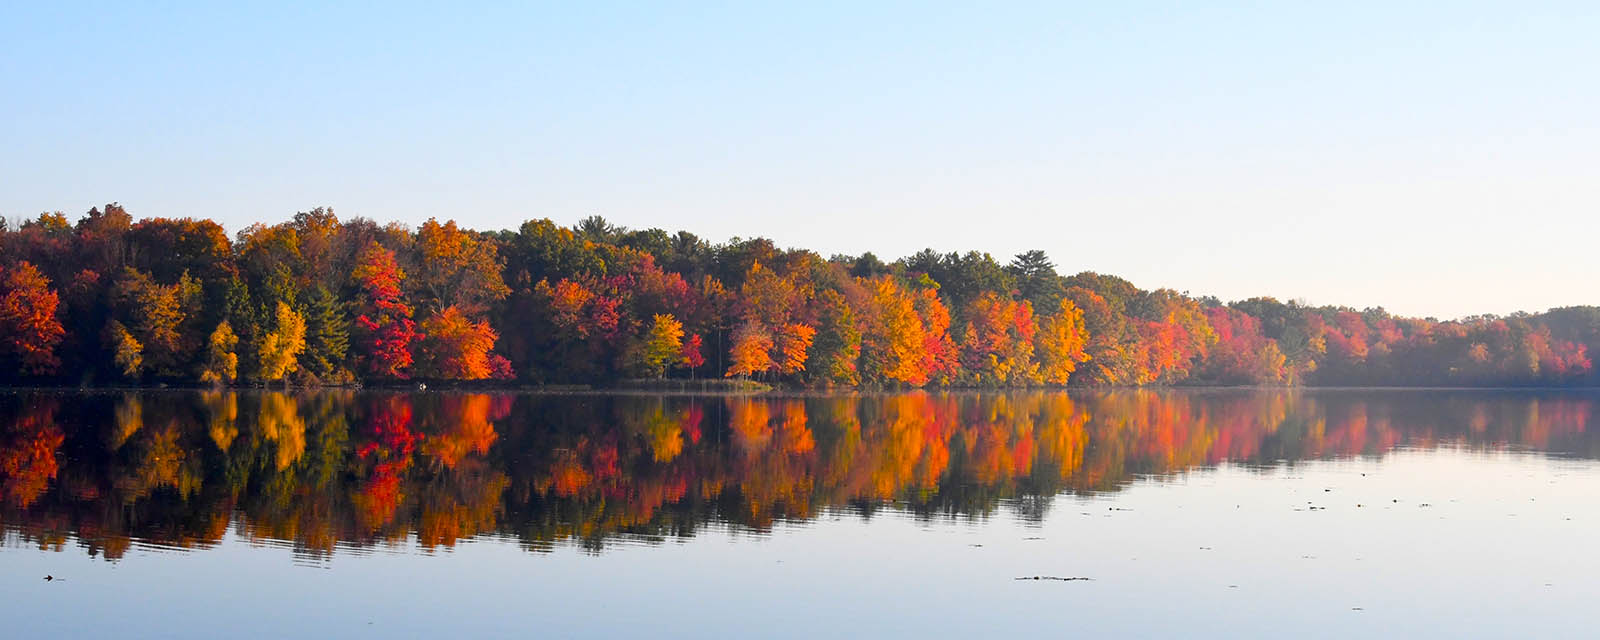 Trout Lake aligned with trees covered in orange & red leaves